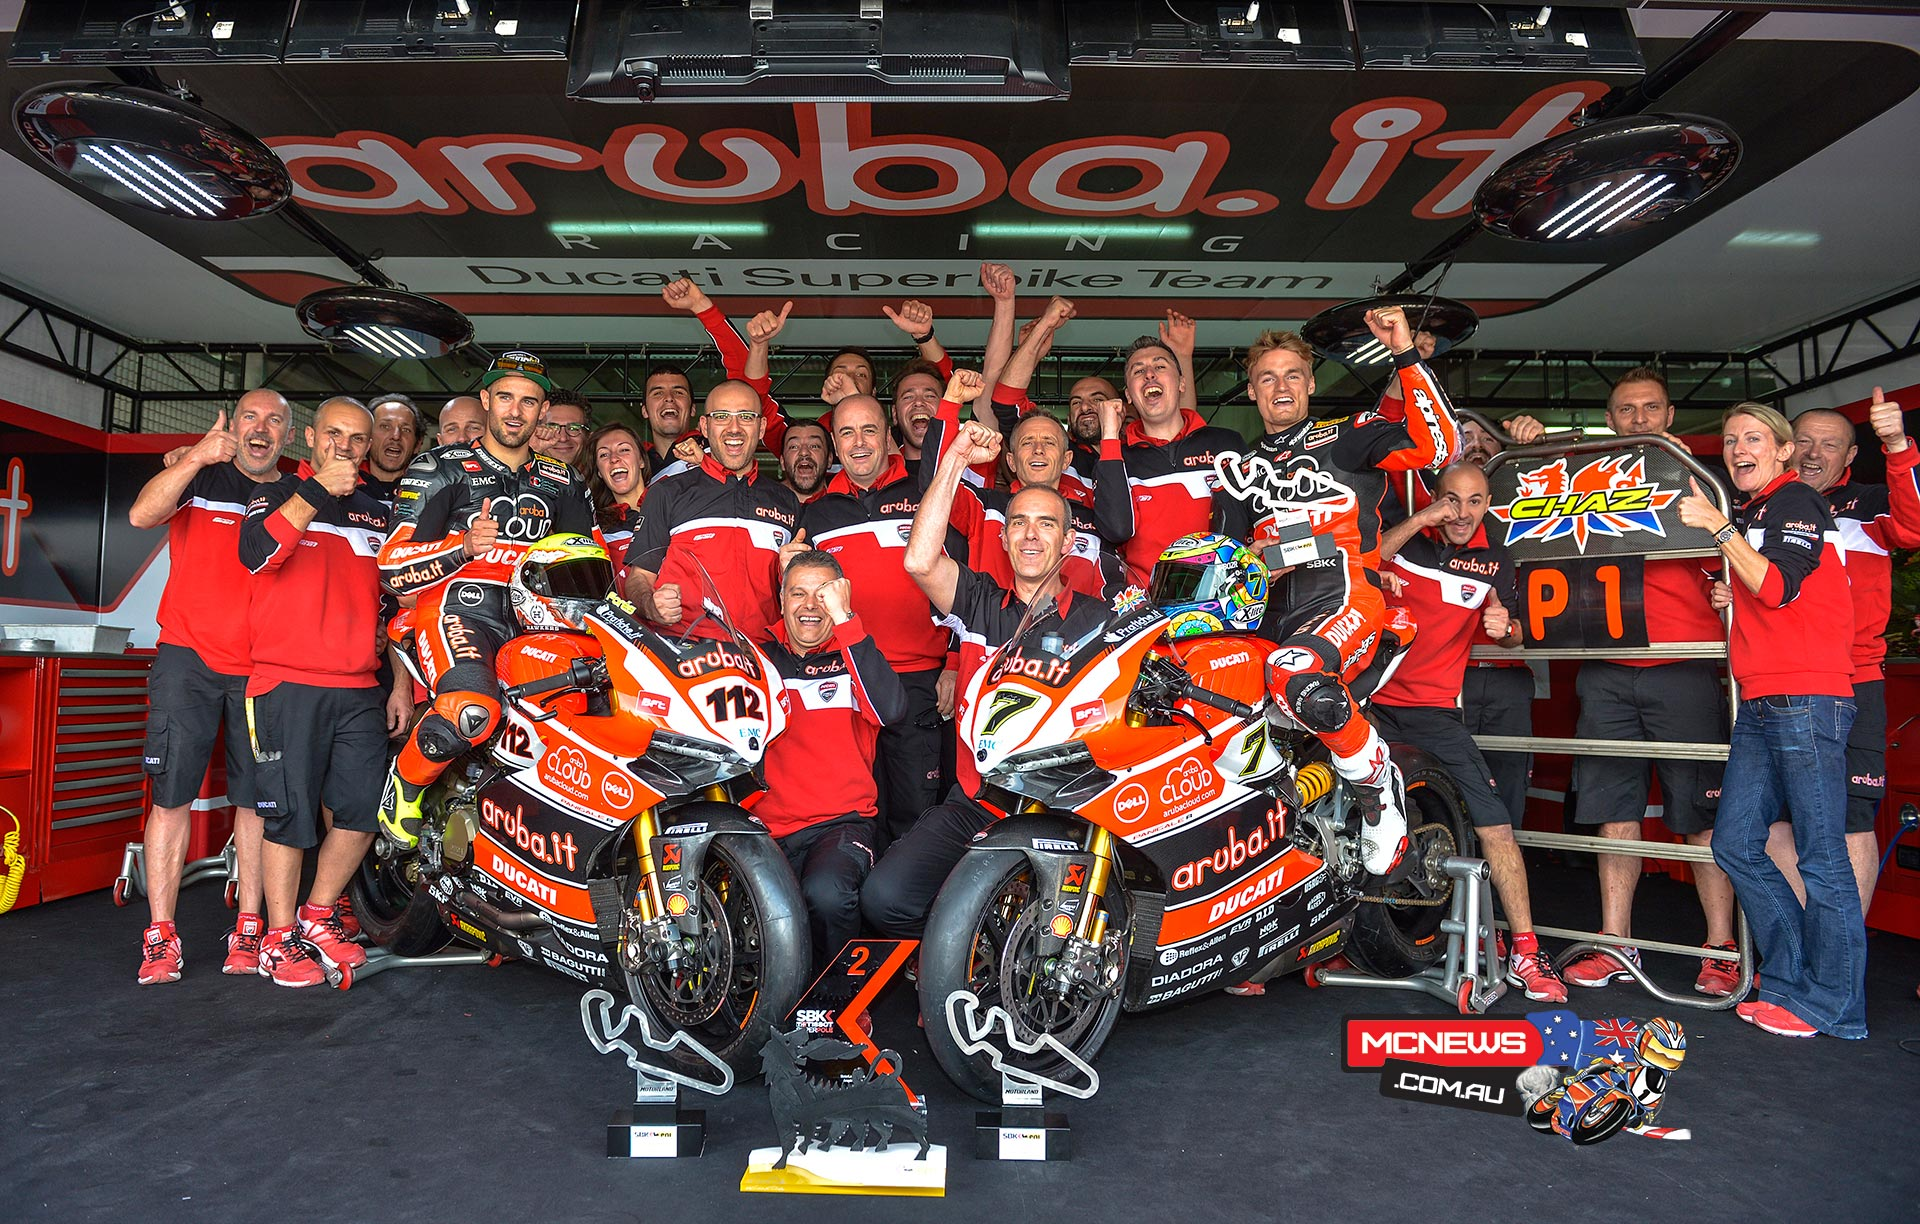 """Ernesto Marinelli – Ducati SBK Project Director – """"Today is a really important day for us. The first win for the Panigale in World Superbike is a significant milestone that goes a long way towards repaying the great work carried out by all of the guys in Borgo Panigale who, with dedication, passion and commitment have worked tirelessly over these last two years without a victory. The first thank-you therefore goes to all of their hard work: """"Well done"""". Chaz was superb and in race 2 he rode perfectly to give us this first victory. He only just missed out in race 1 but in race 2 he won by a clear margin, demonstrating all of our bike's potential as well as his great talent. The entire team has worked well, as ever, and Xavi's results are also very positive. Now we must continue in the same direction to ensure that this is the first of many."""""""